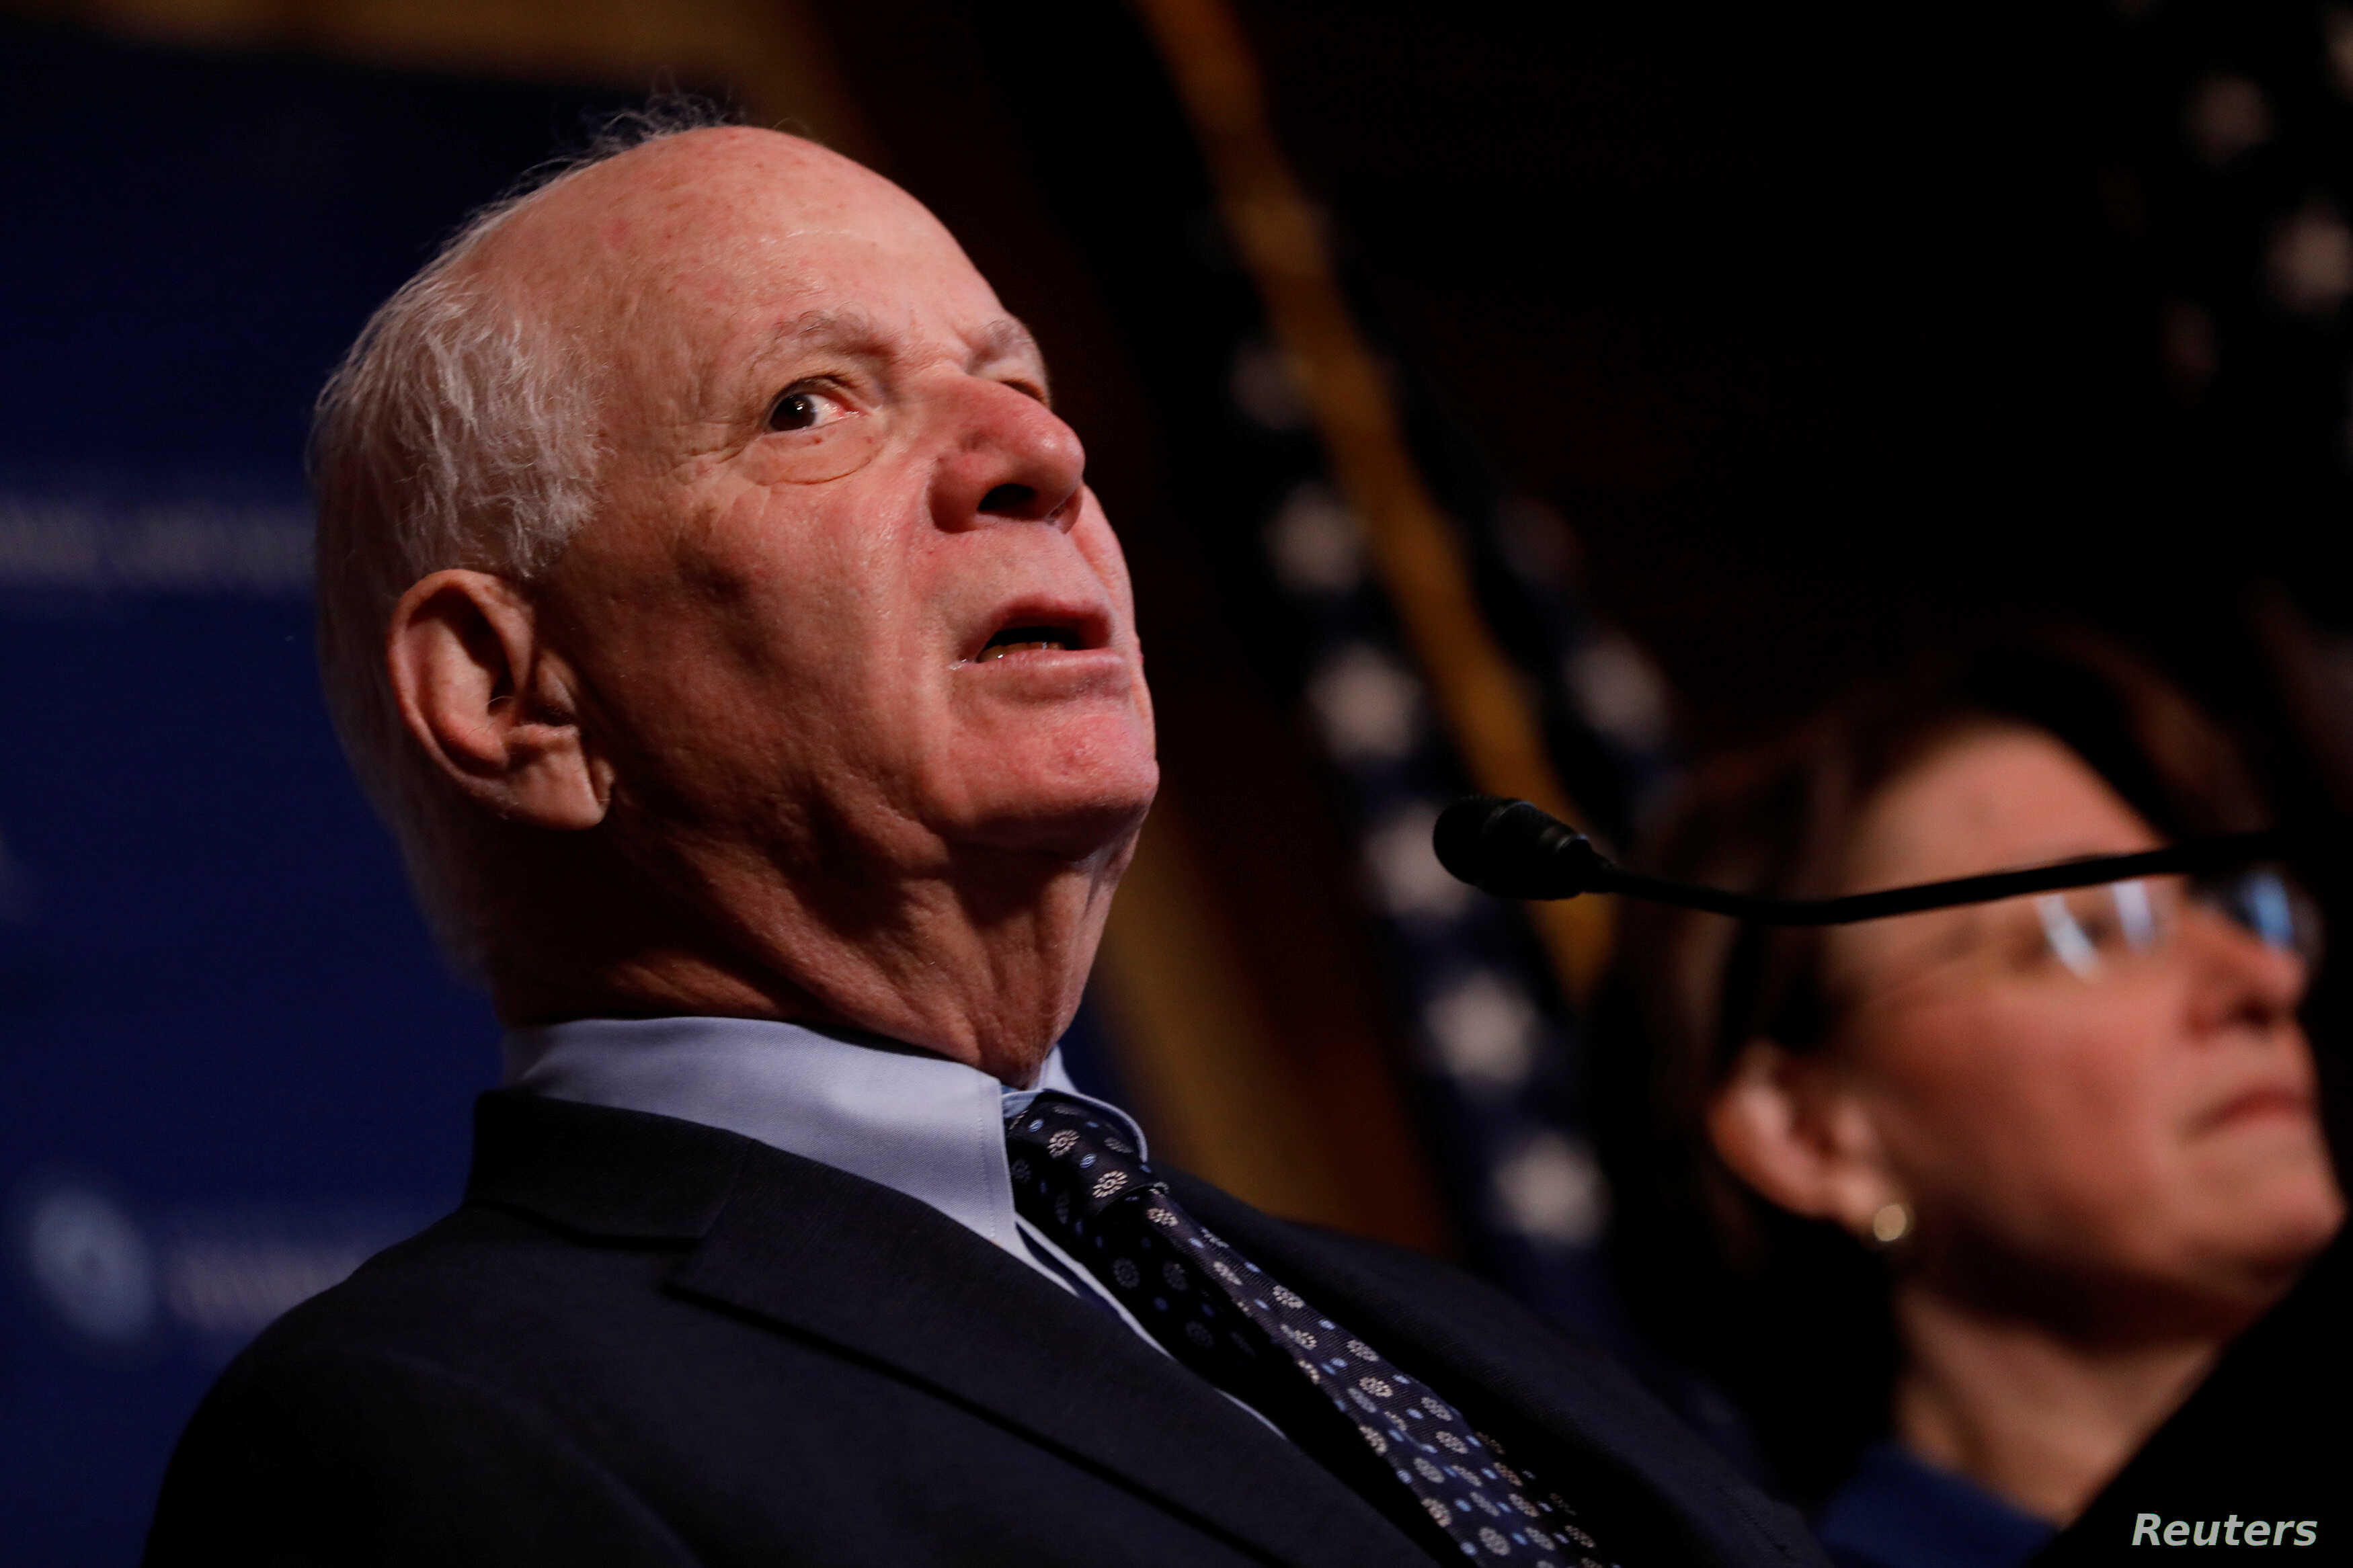 FILE - Senator Ben Cardin (D-MD) speaks at a press conference on the need for increased government transparency at the Capitol in Washington, D.C., U.S. March 15, 2017.